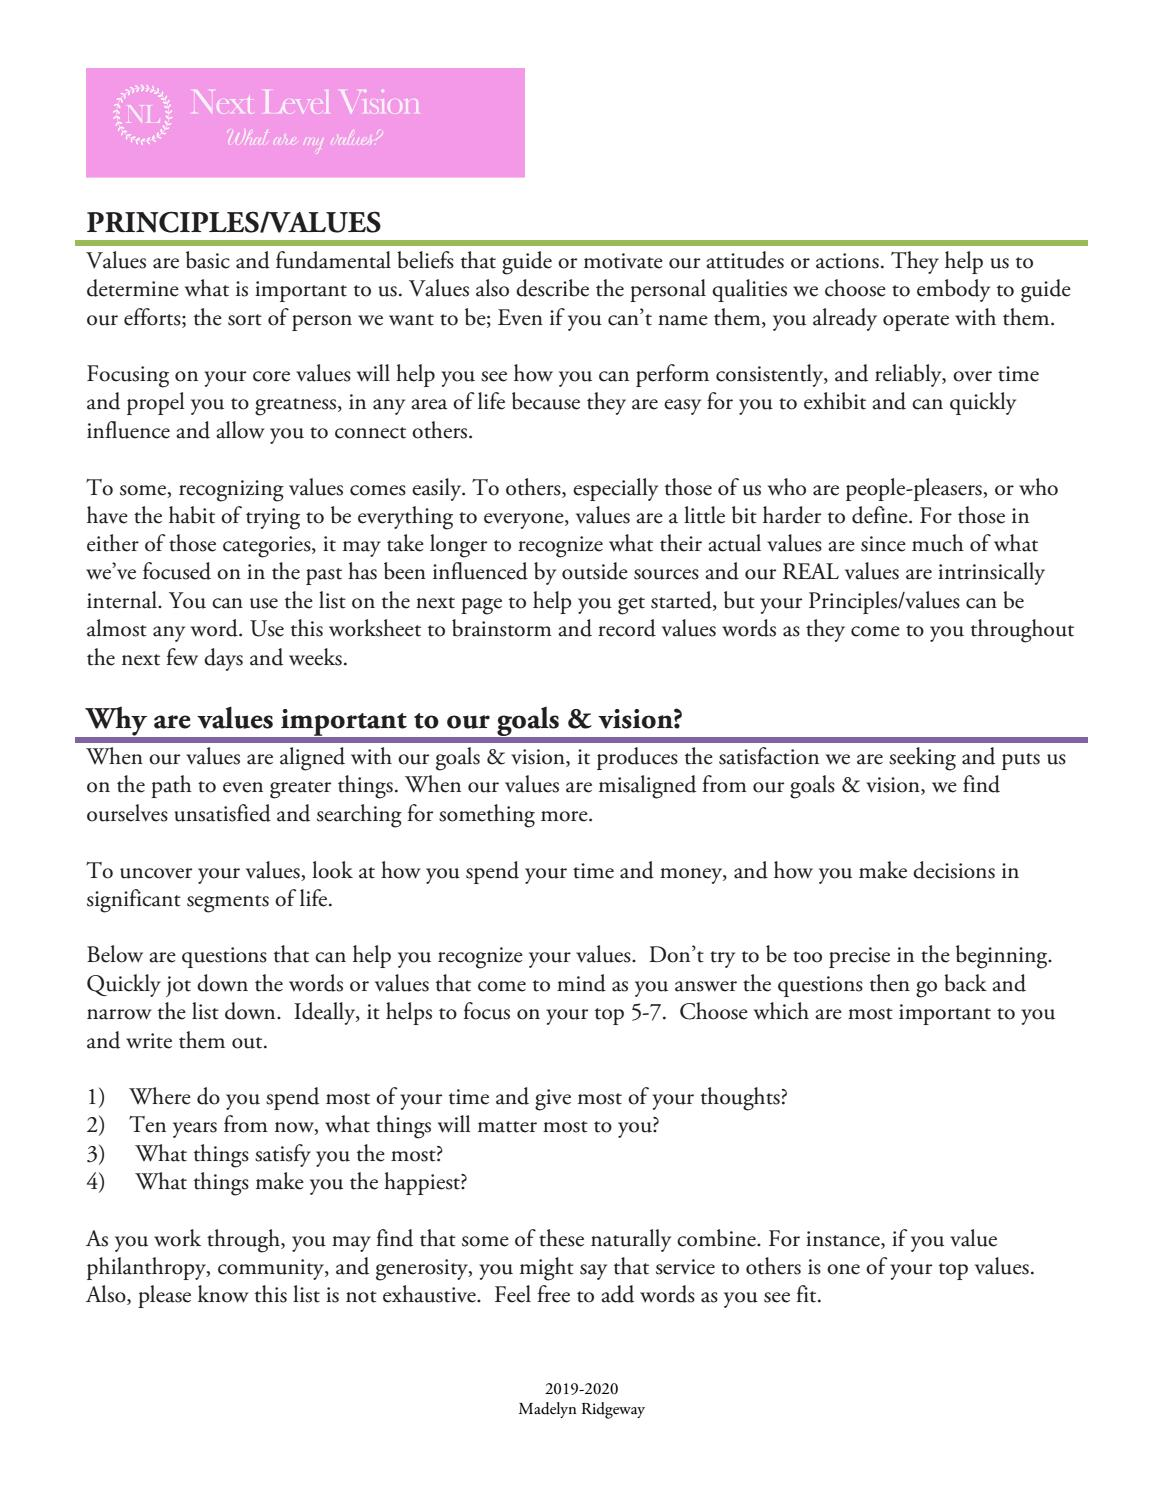 Next Level Vision Worksheet- Values by Madelyn Ridgeway - issuu